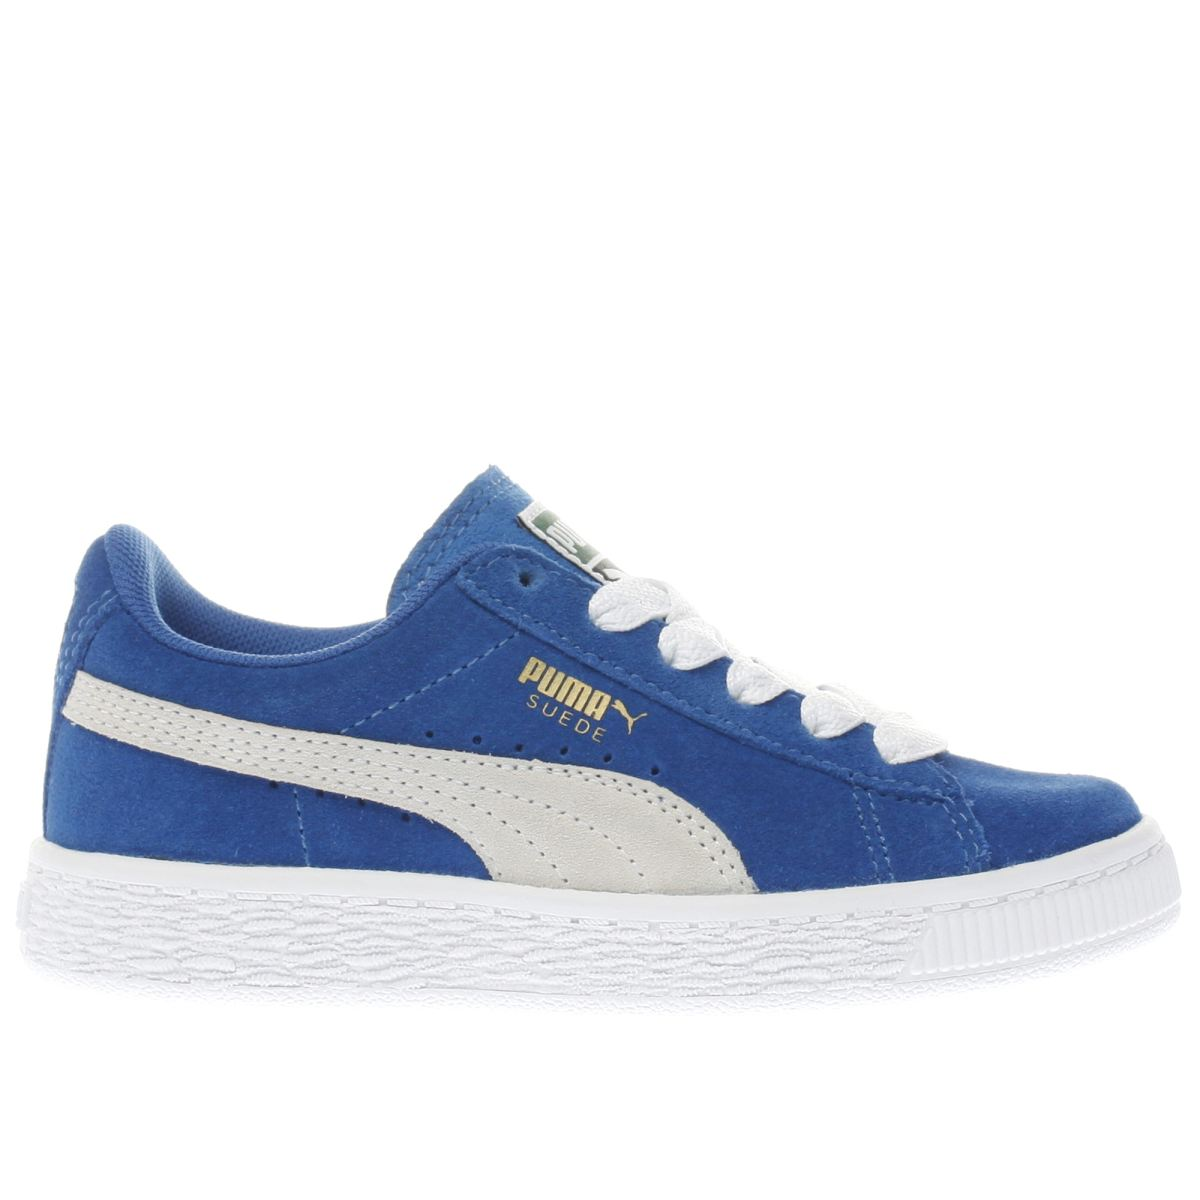 puma blue & white suede classic Boys Junior Trainers